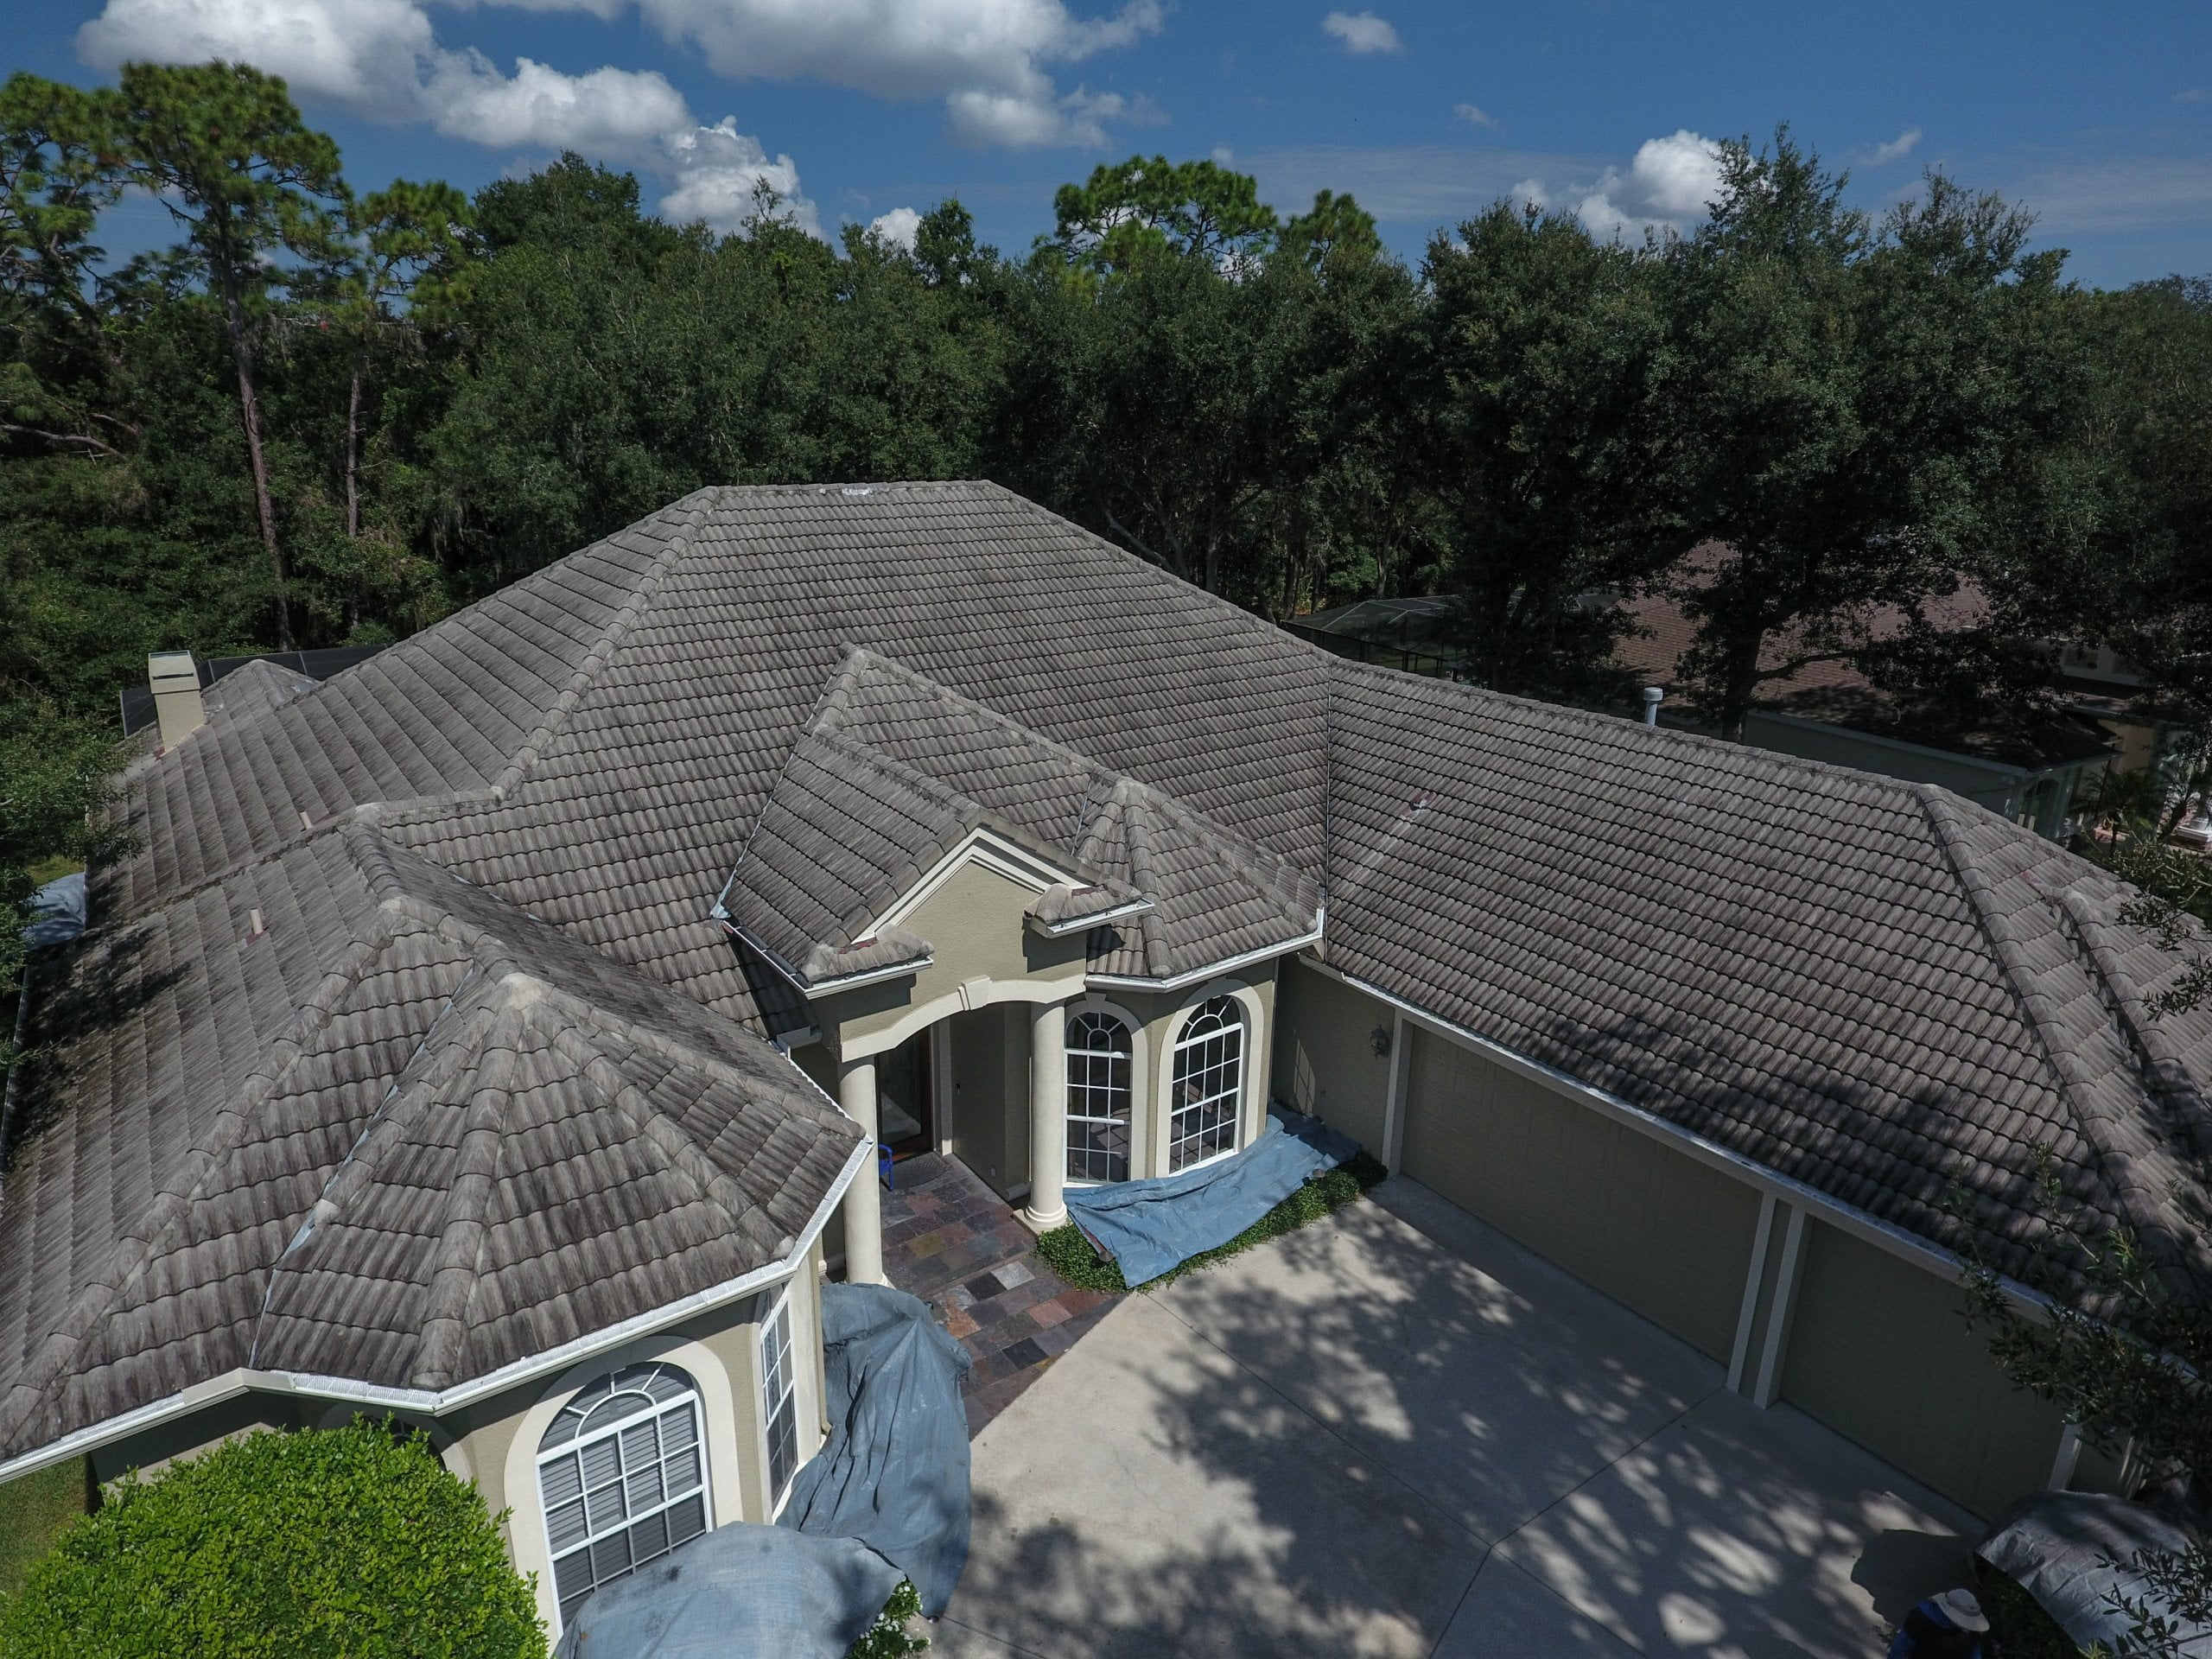 roof cleaning company tampa fl